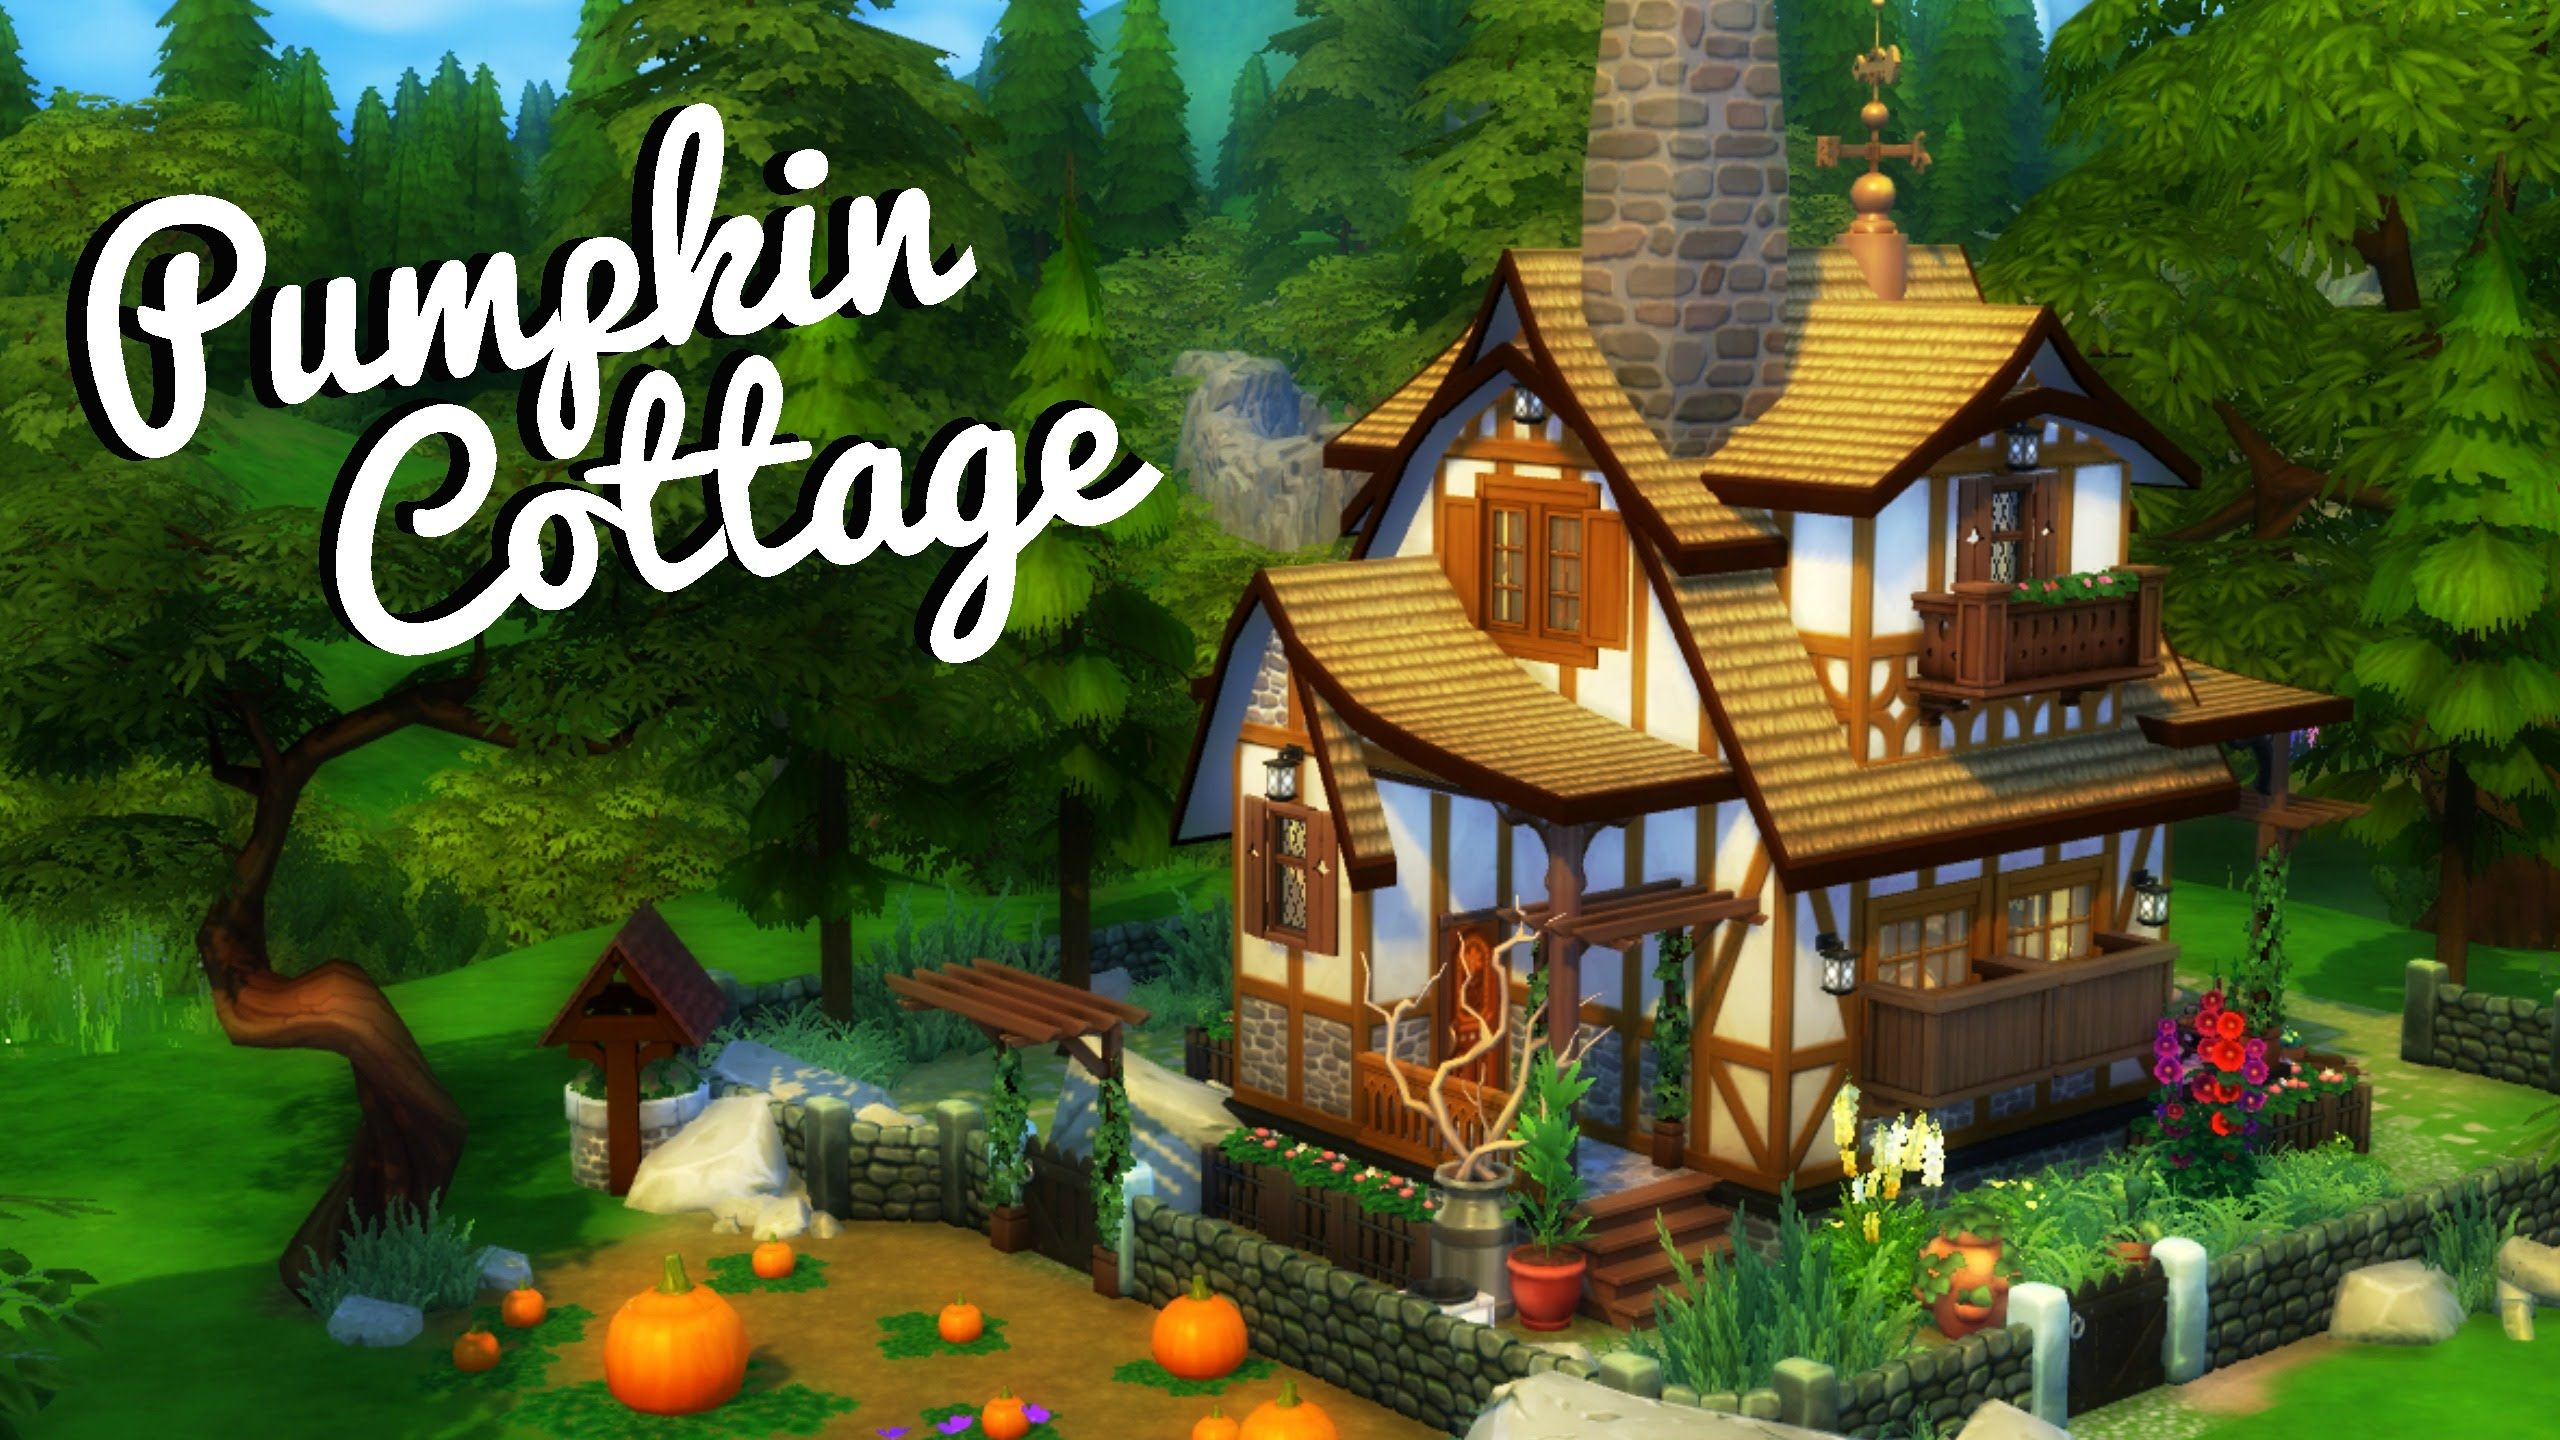 Urban treehouse sims 4 houses - Check Out This Lot In The Sims 4 Gallery Sims Games Sims And Videogames